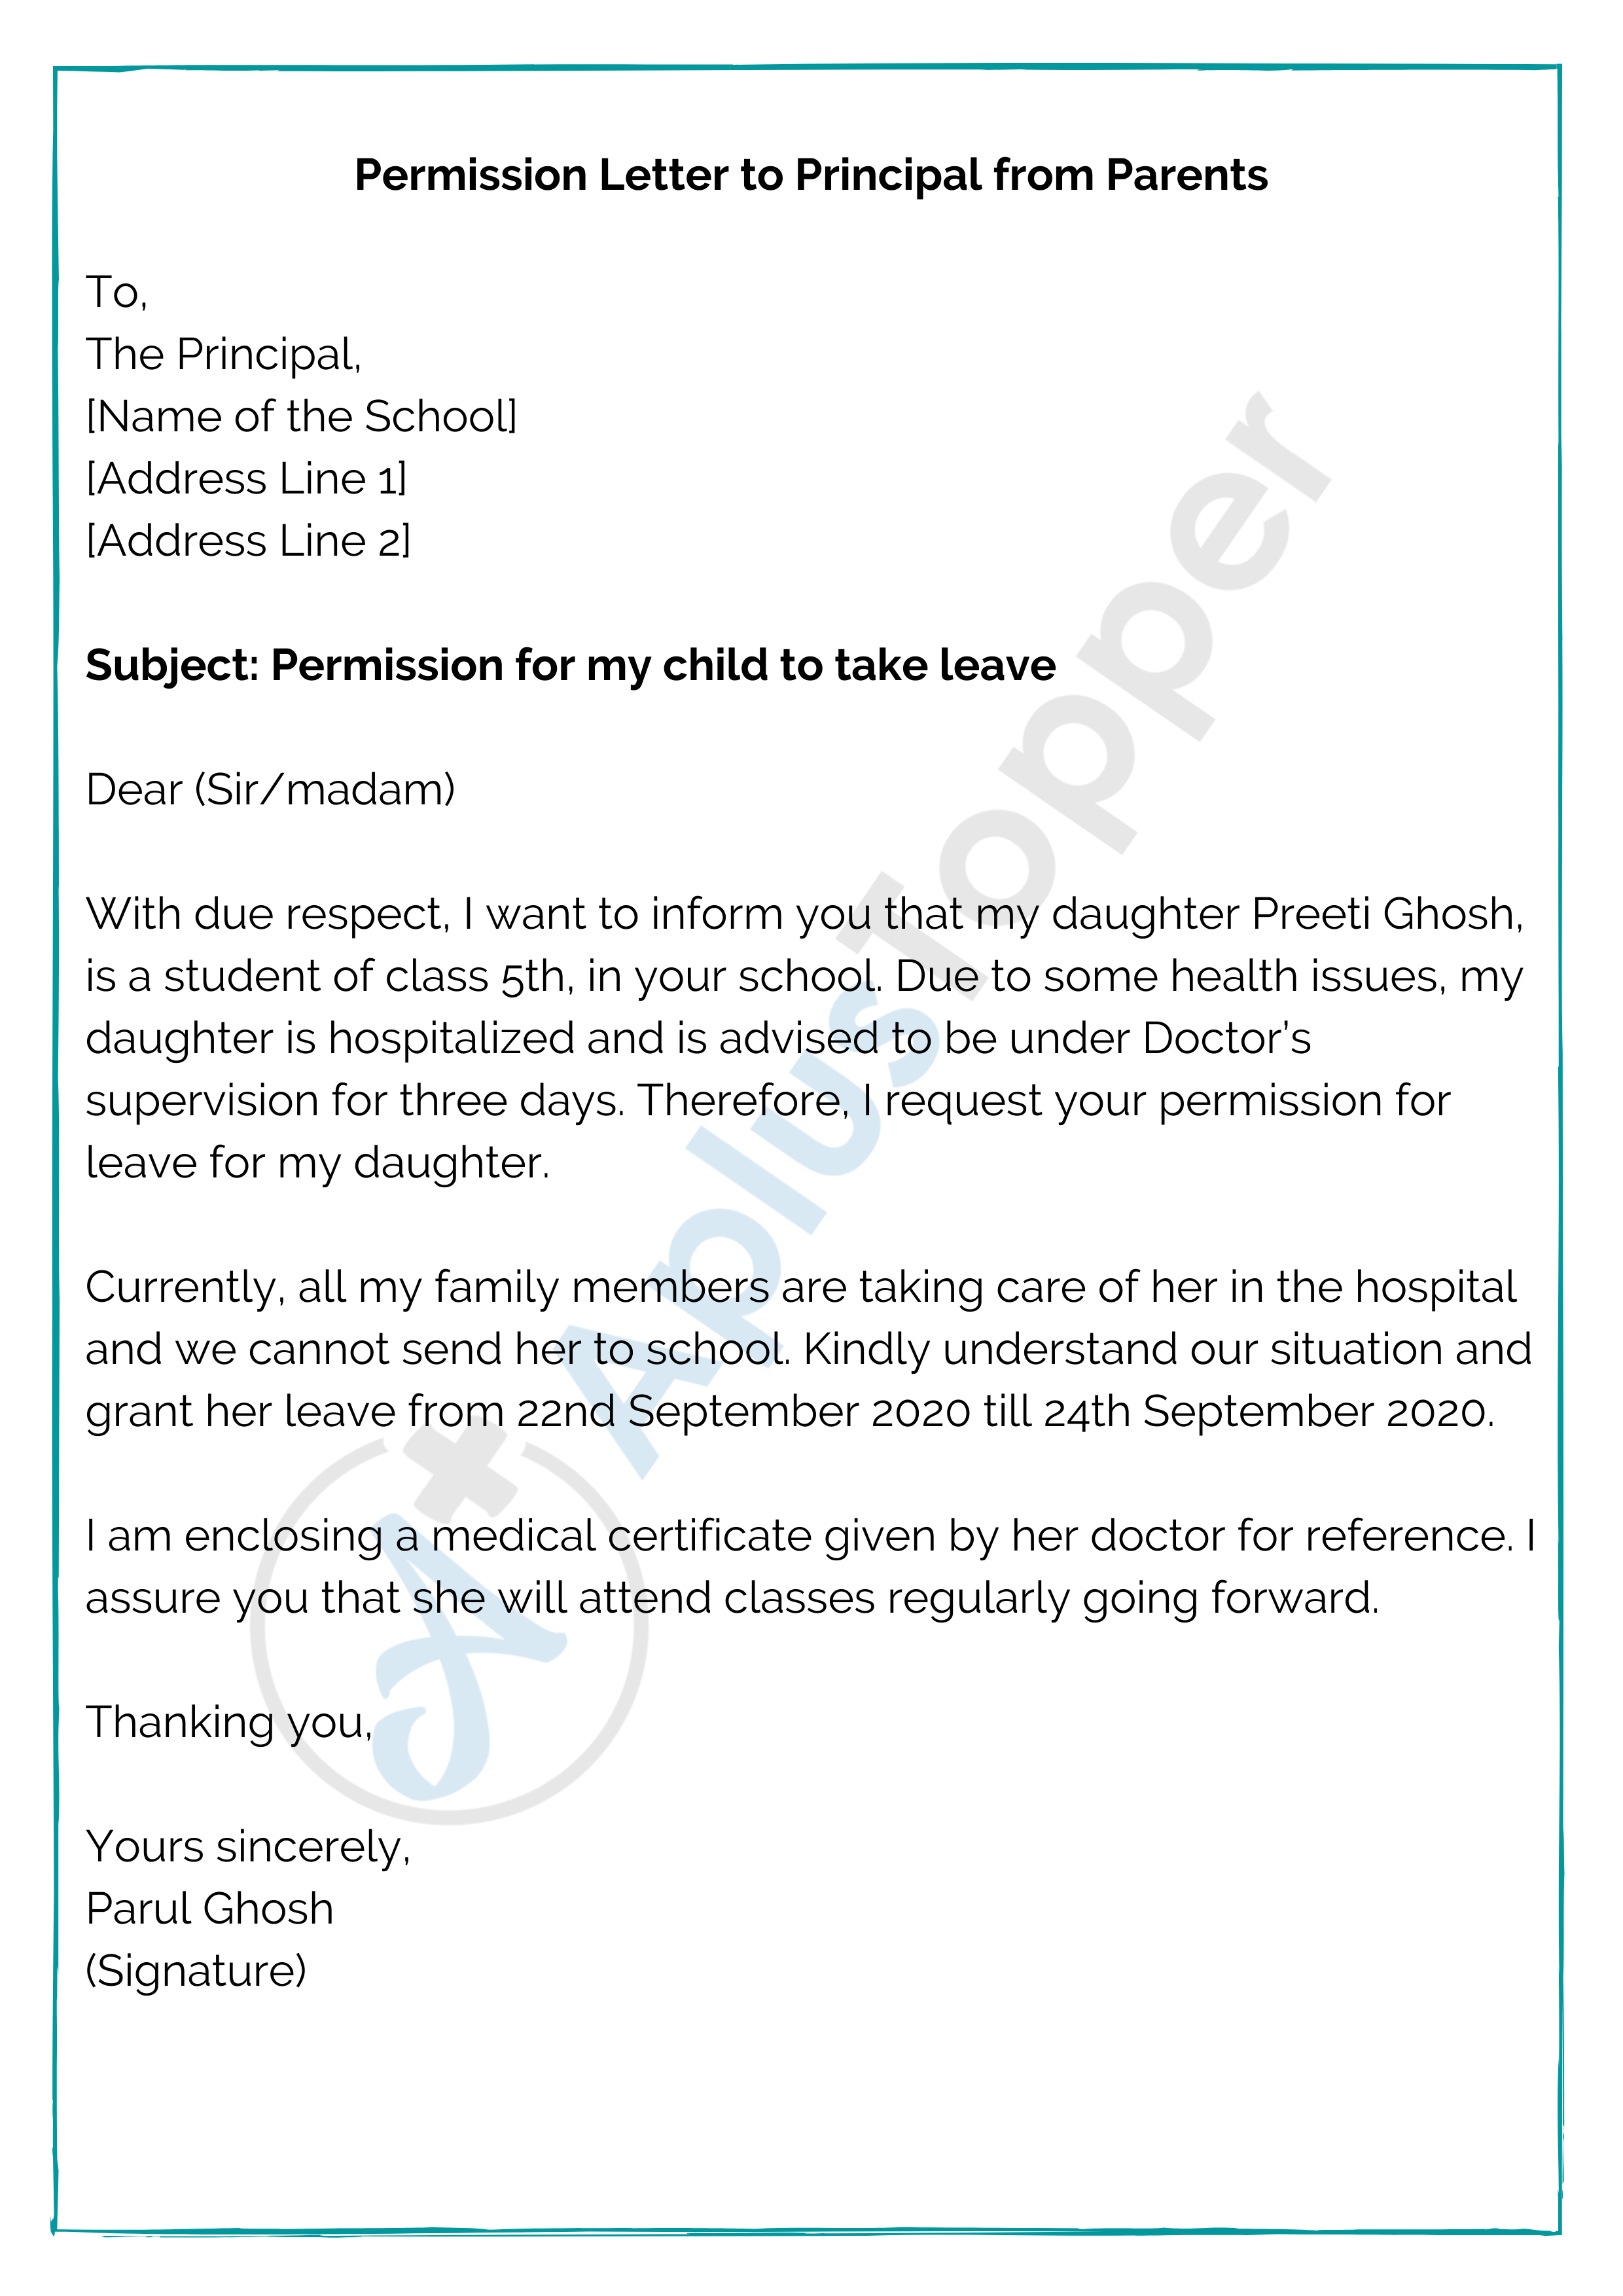 Permission Letter to Principal from Parents